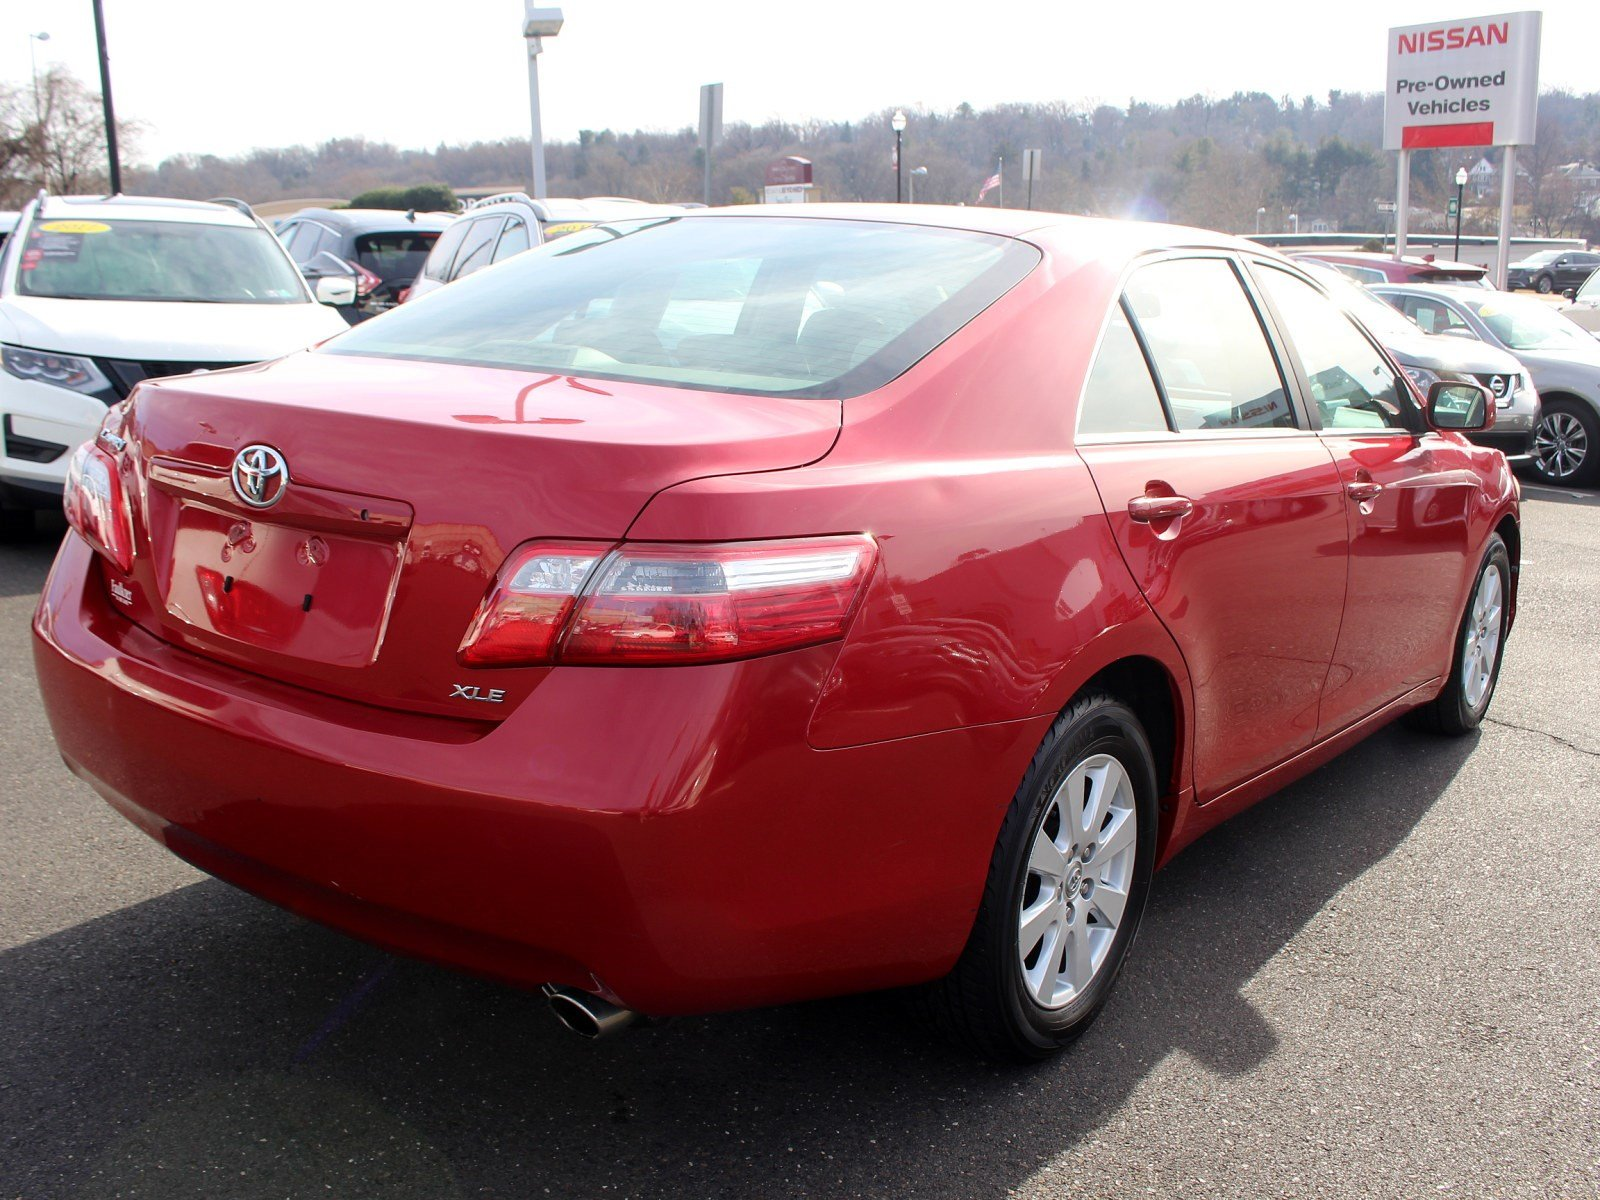 Pre-Owned 2008 Toyota Camry XLE